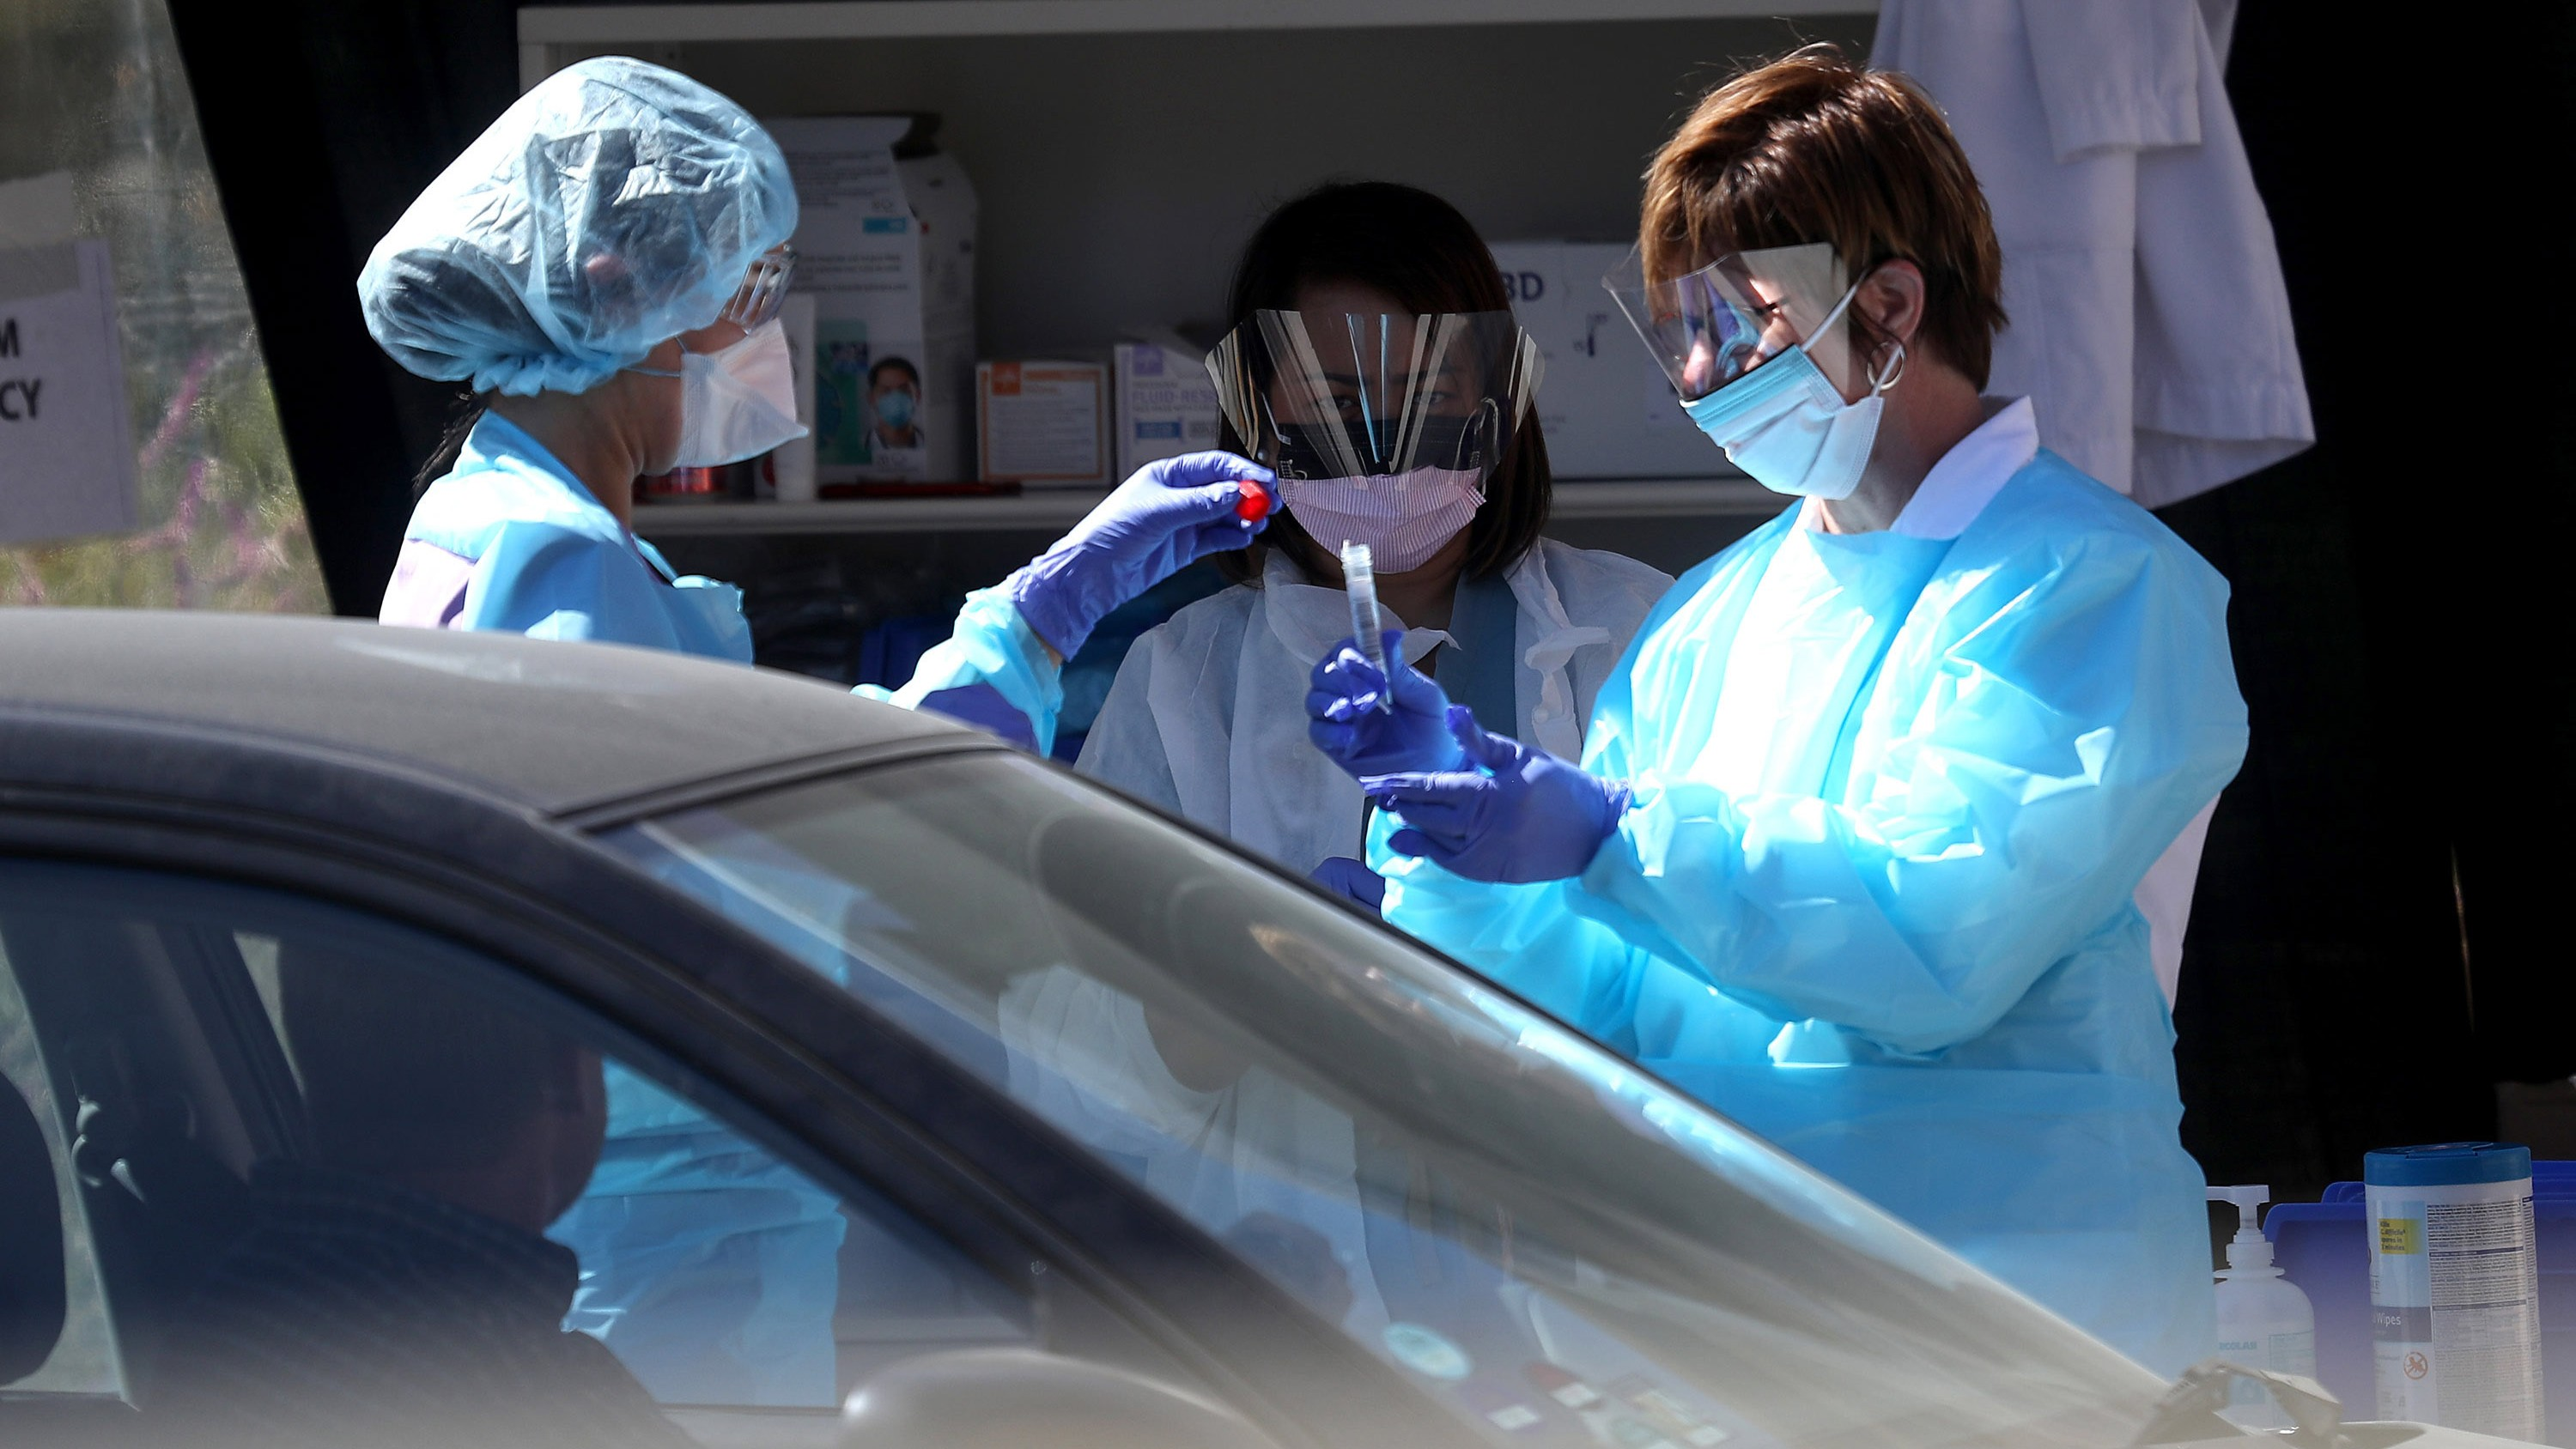 Medical personnel obtain samples at a drive-thru coronavirus testing station in San Francisco.